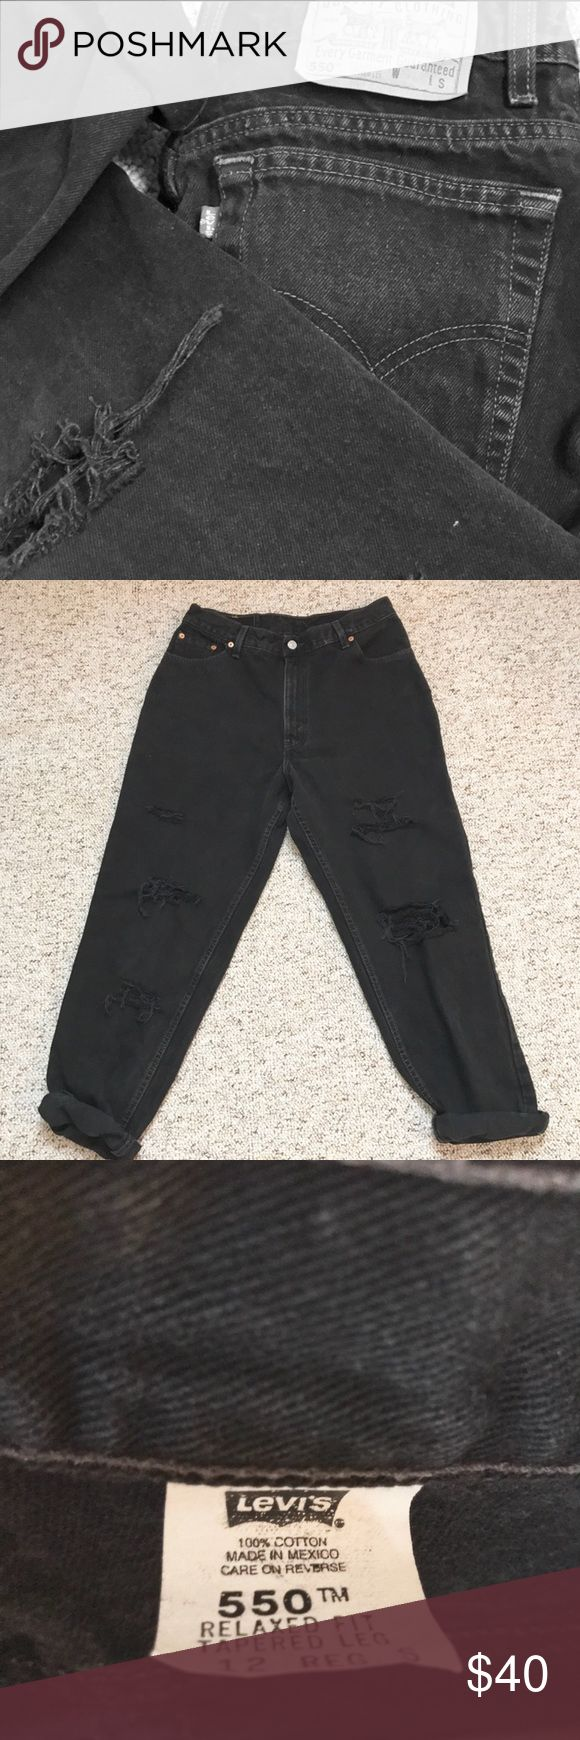 "Levi's 550 Vintage Distressed Black Jeans Levi's 550 •Vintage Distressed High Waisted Black Jeans  •High Waisted • Relaxed Fit • Tapered Leg  100% Cotton Tagged 12 S  (Fit like a 10 boyfriend fit Jean IMO) Per measurements, best for 28 inch waist IMO • measured at belly button  Waist 14"" • High Waisted, to be worn at belly button  Hips 22 Rise 11.5"" Inseam 27"" -Please see all pics and compare your personal measurements to the measurements above *With vintage wear comes fading, small stains…"